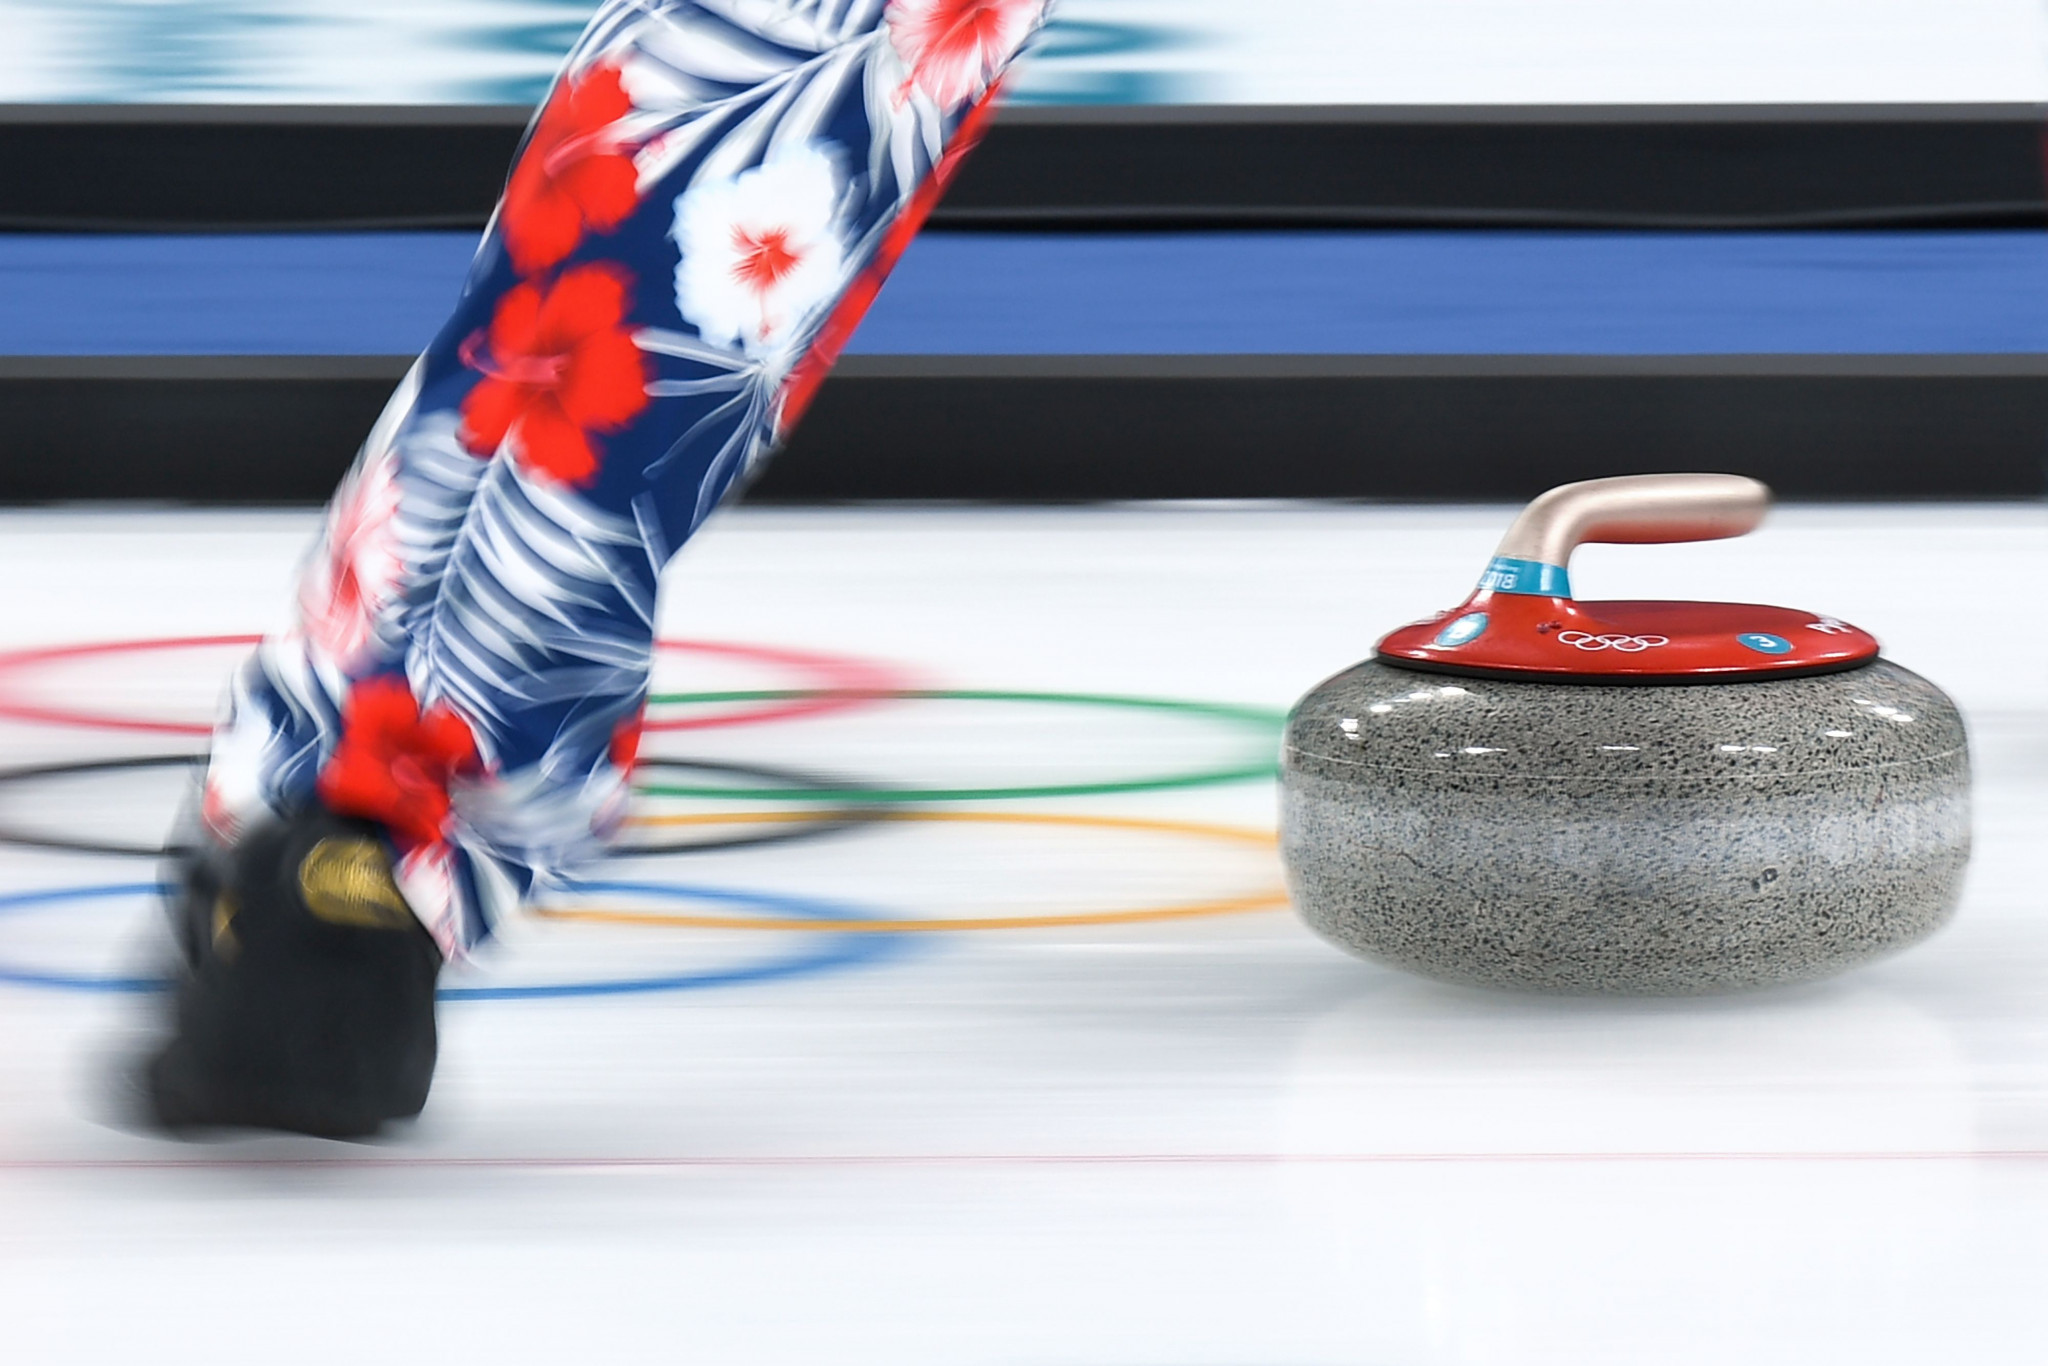 First stone set to be cast at inaugural Pre-Olympic Qualification Event